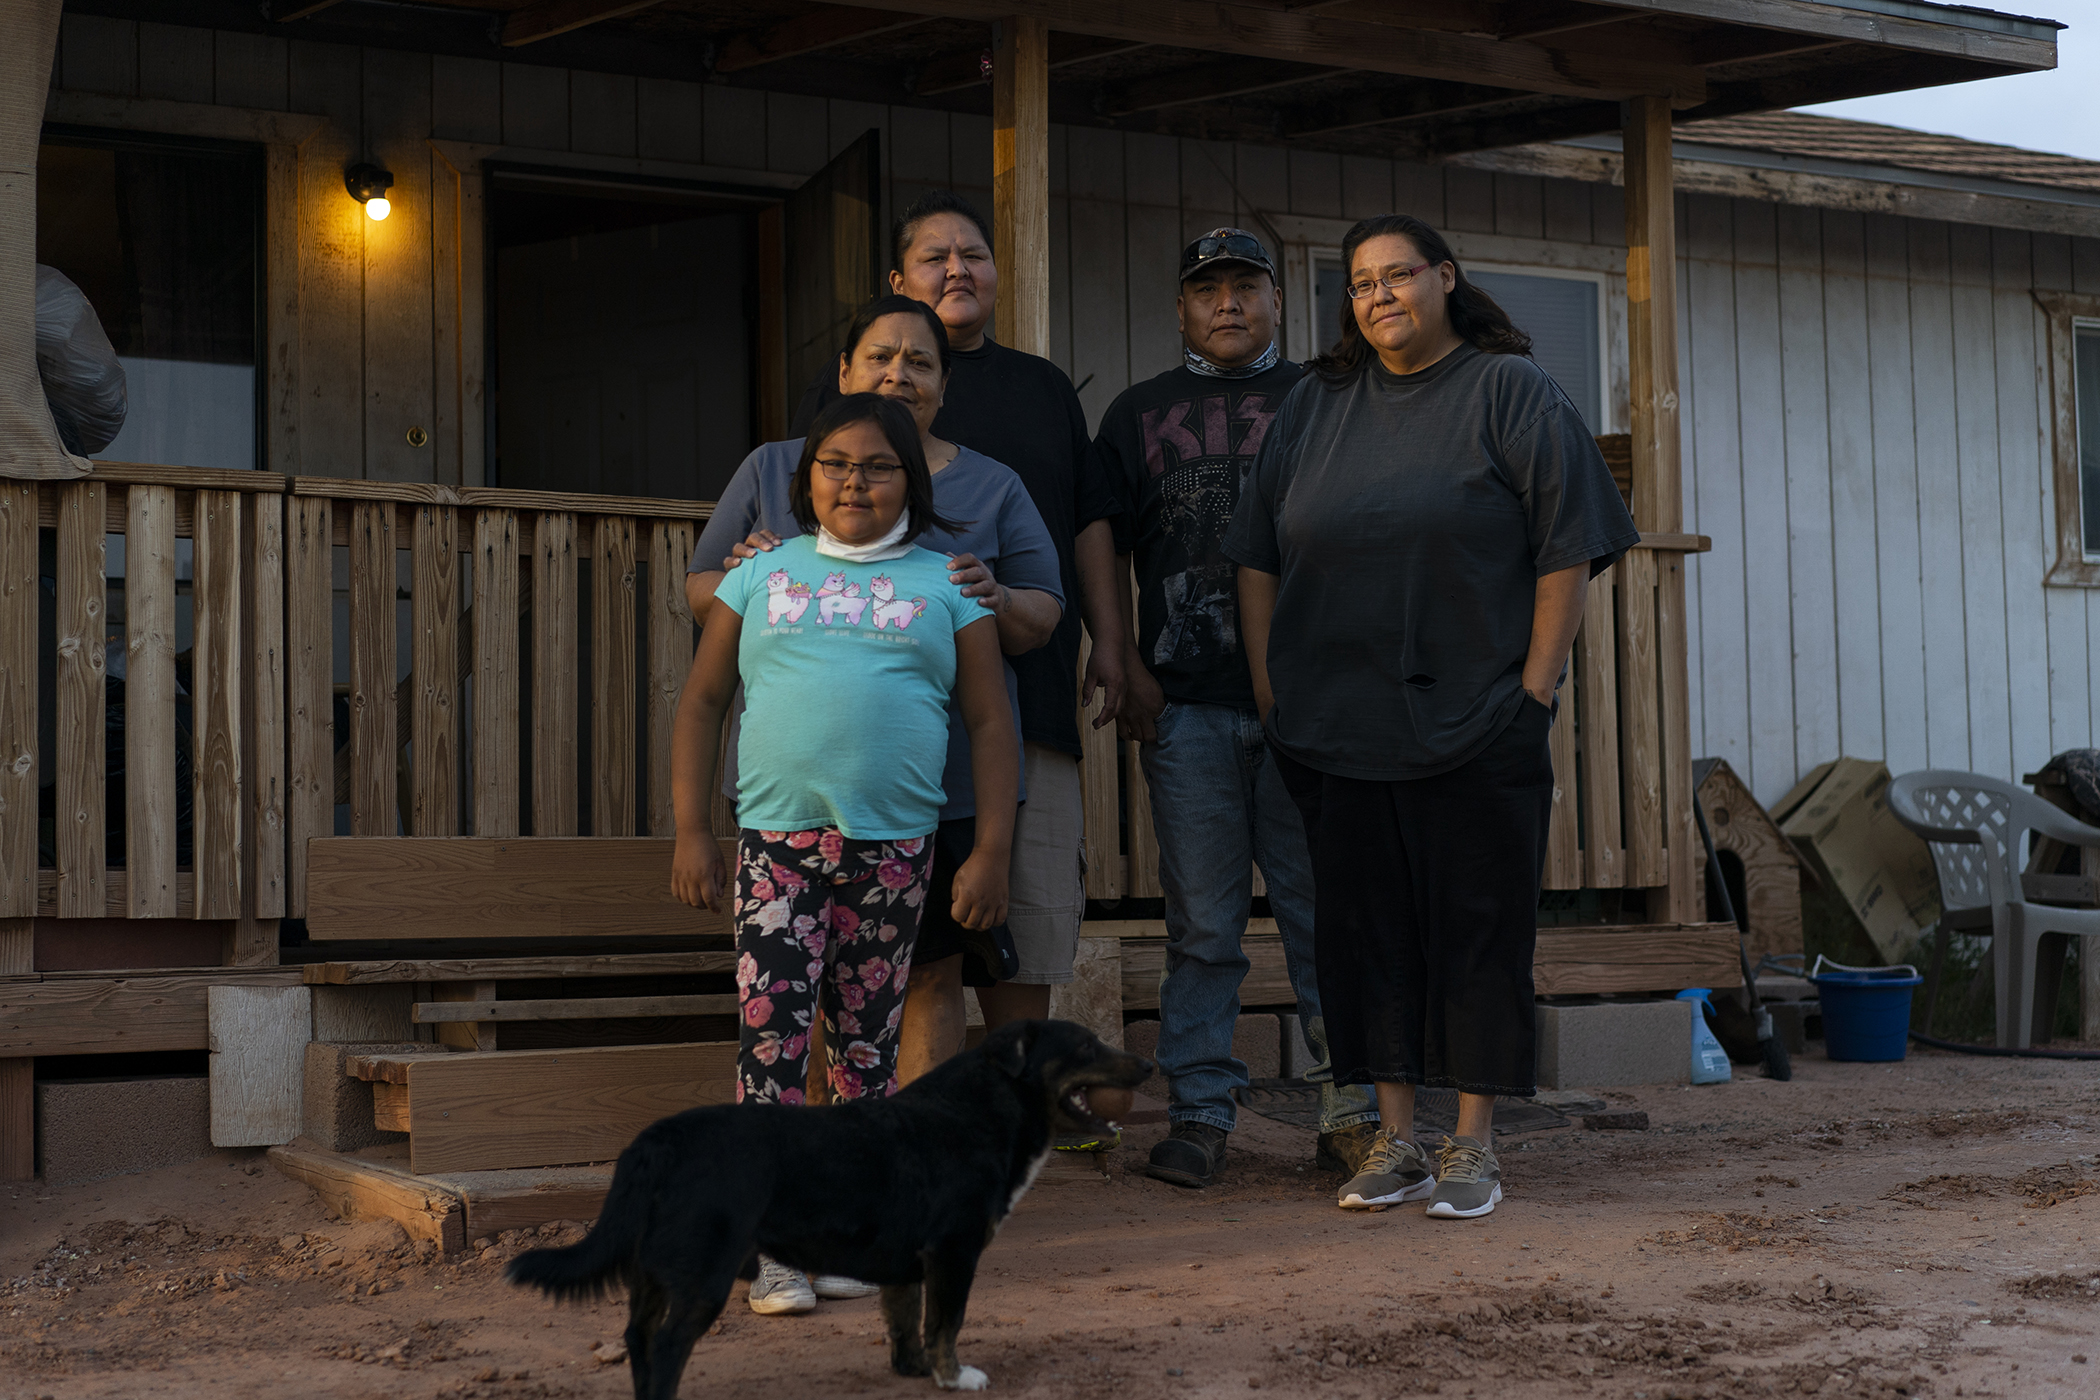 The Navajo Nation is facing one of the worst COVID-19 outbreaks in the US.